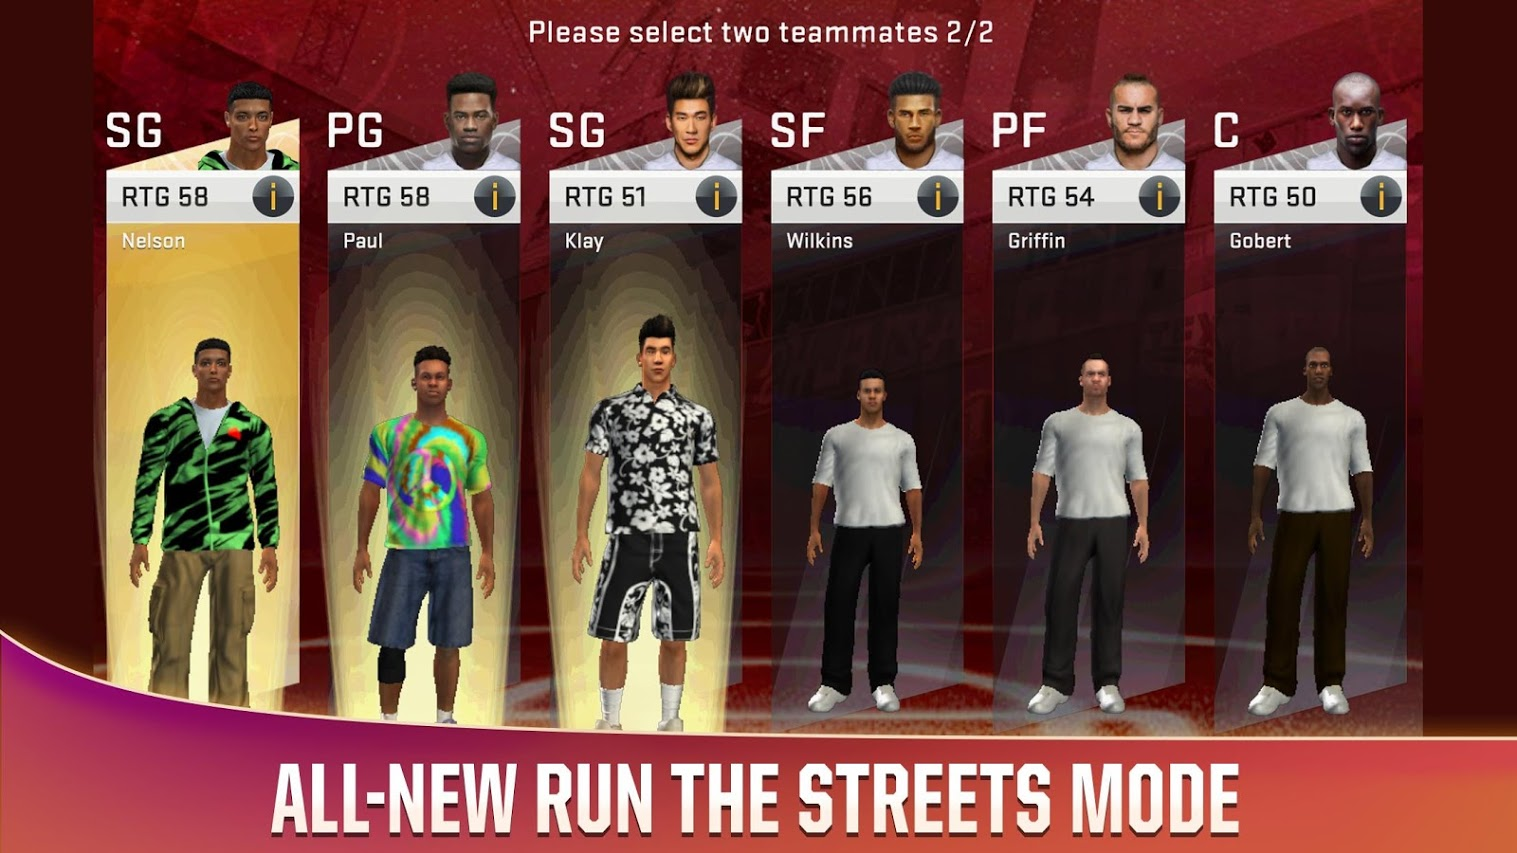 Nba 2k20 Is Available On The Play Store Complete With